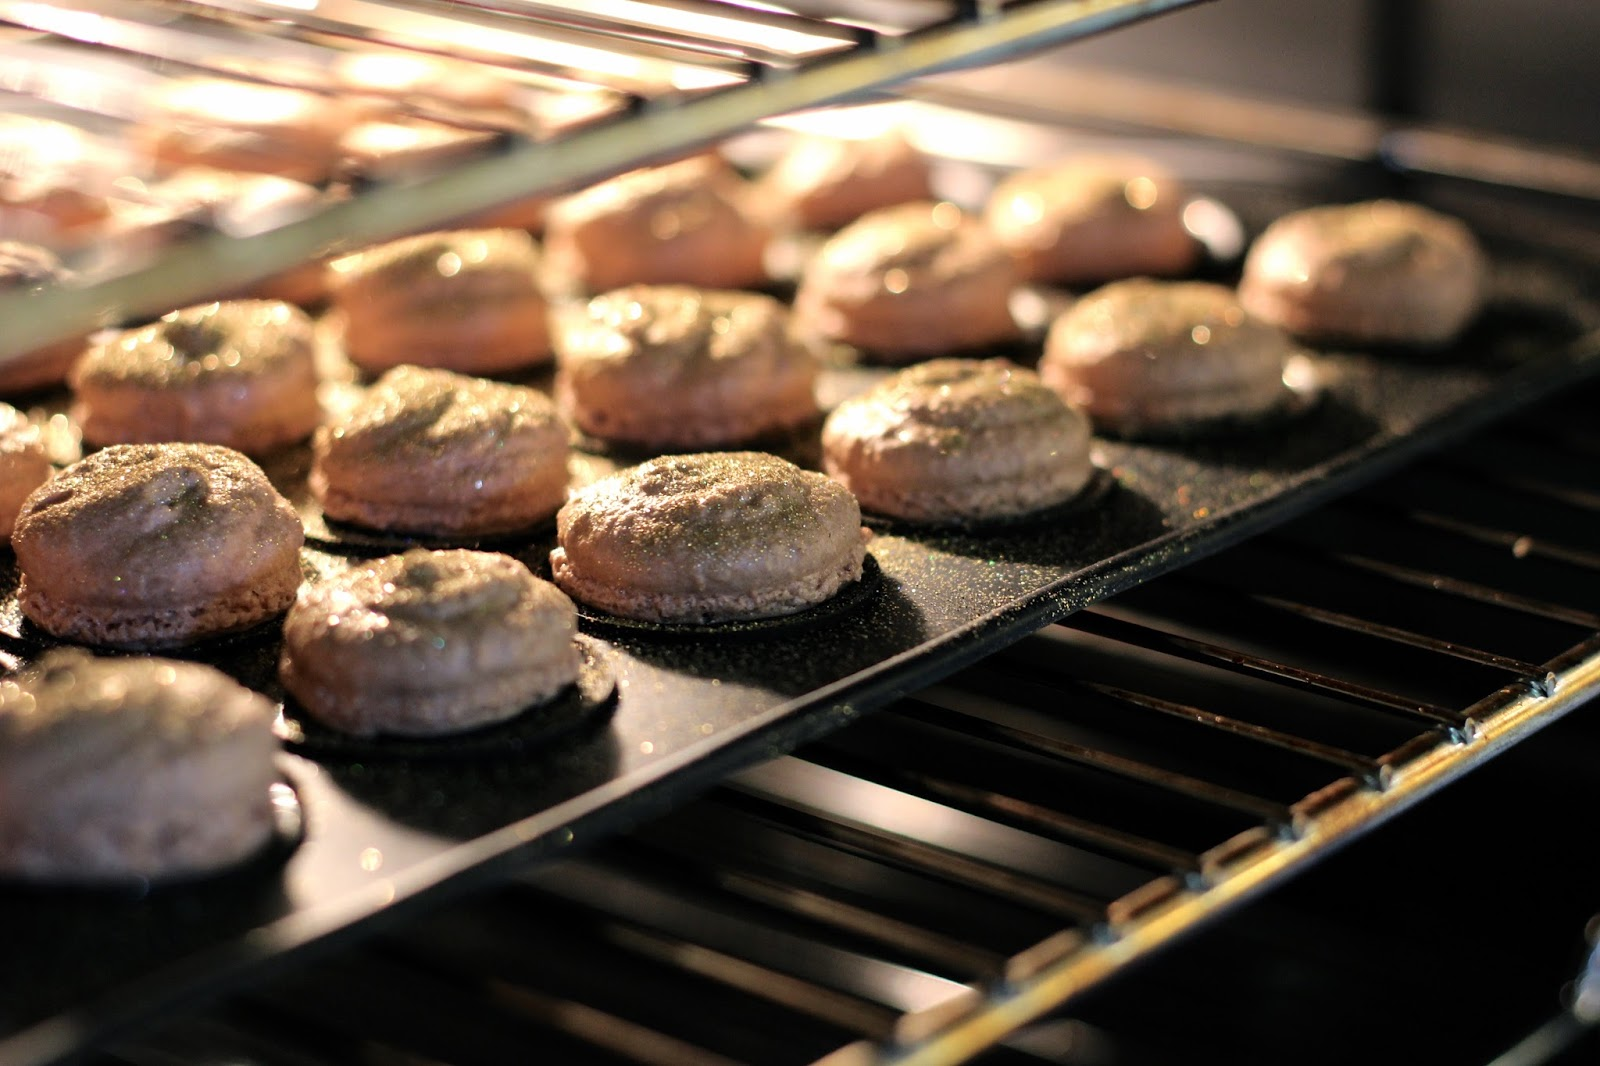 Making macarons at home in oven